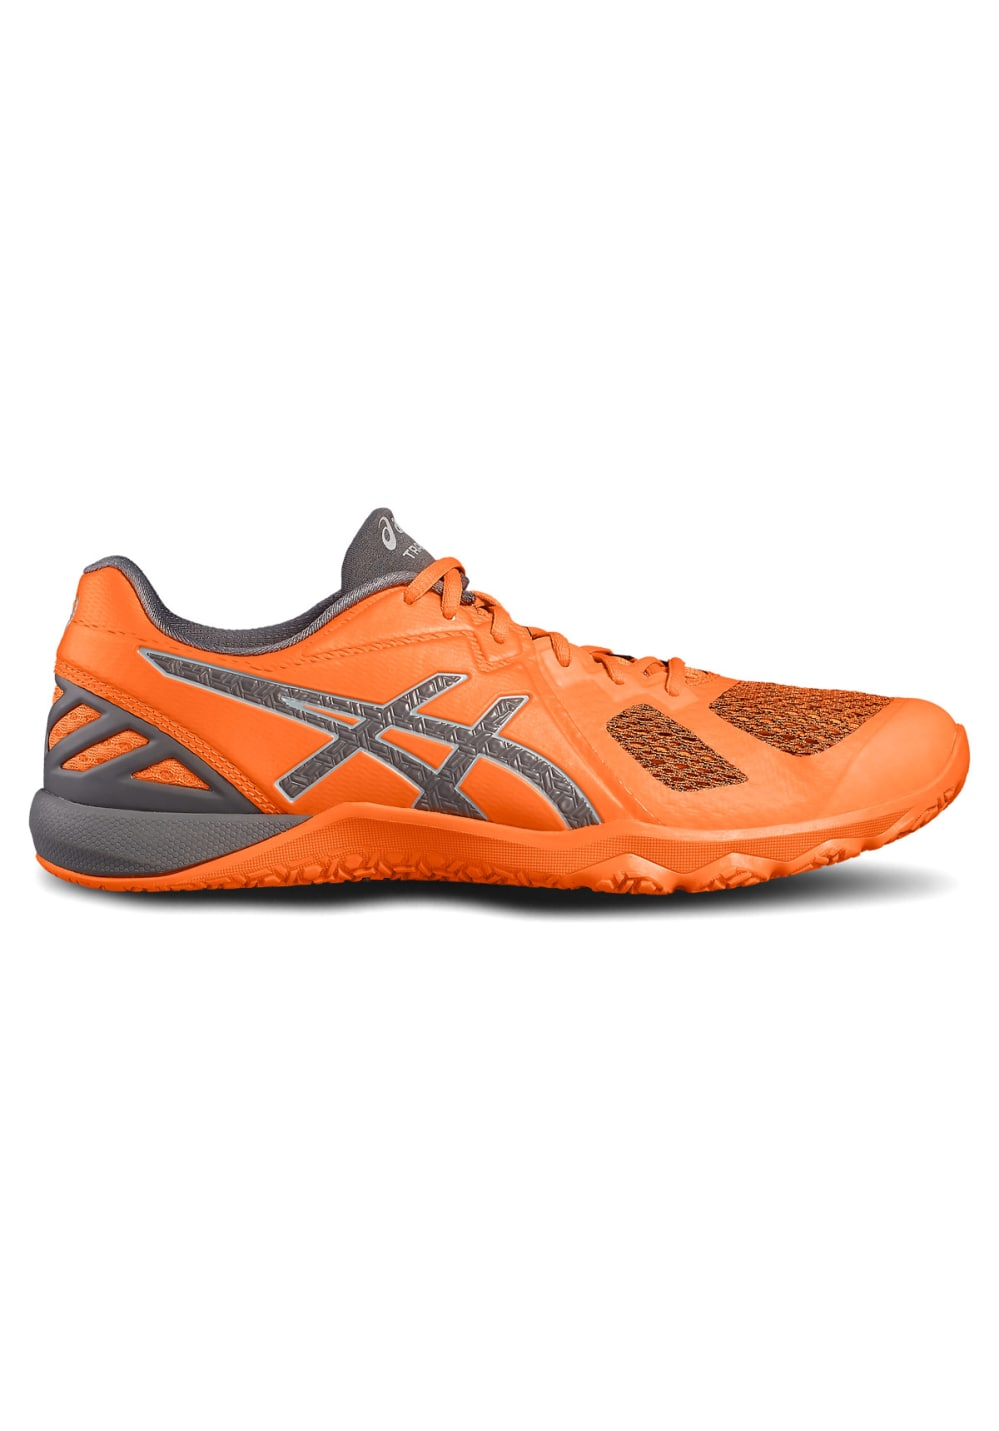 ASICS Conviction X - Fitnessschuhe für Herren - Orange, Gr. 47